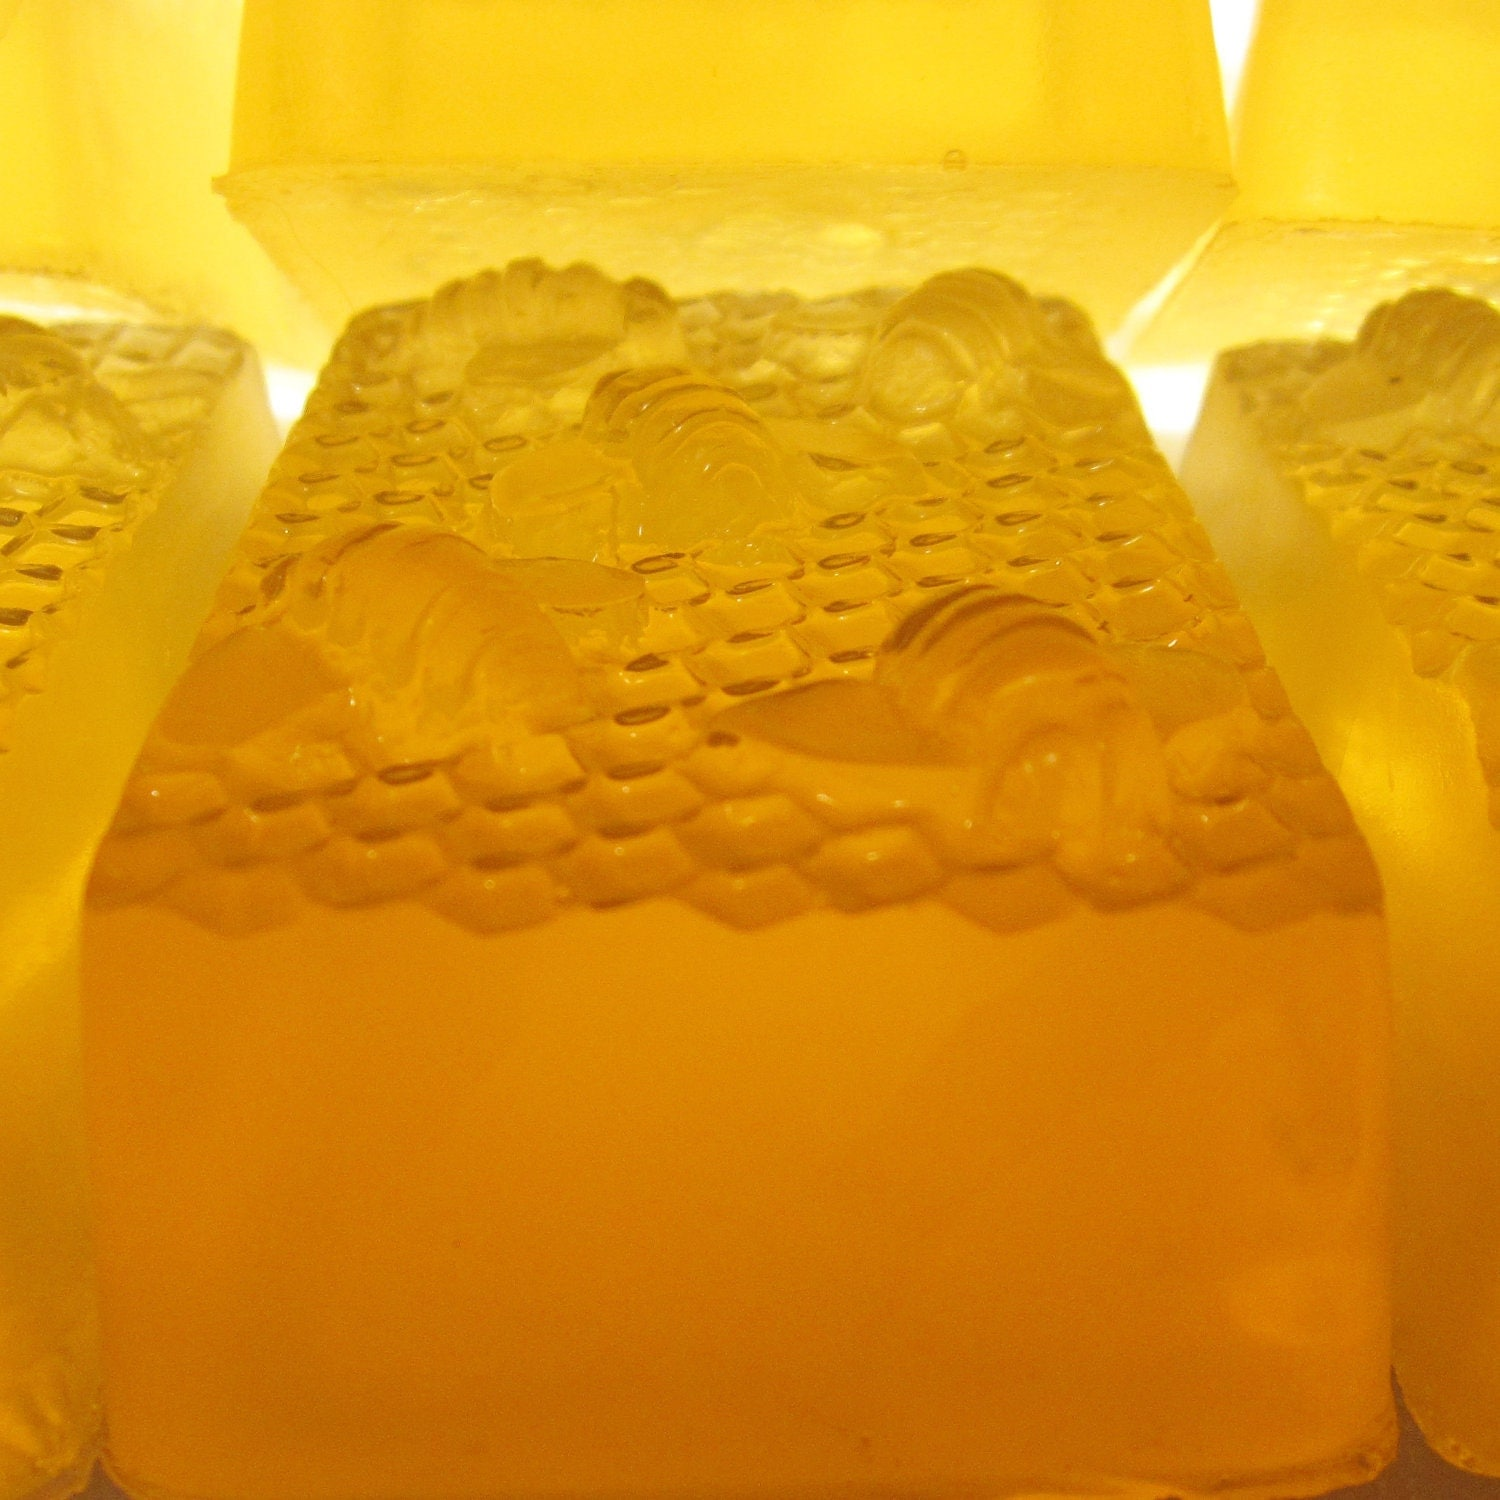 Honey Soap Bar - Hostess Gift - from Lee the Beekeeper - LeesBeesNJ